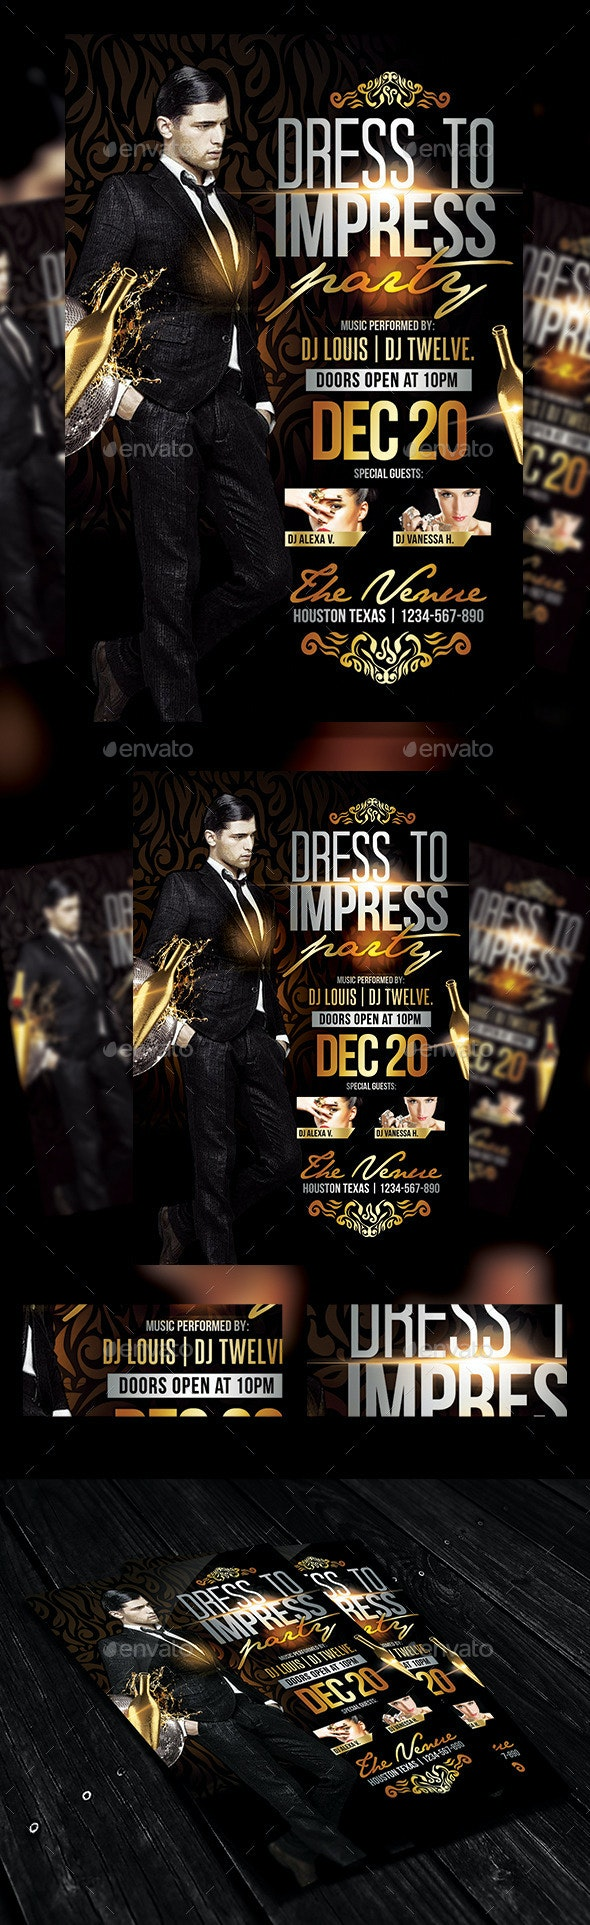 Dress to Impress | Flyer Template - Clubs & Parties Events